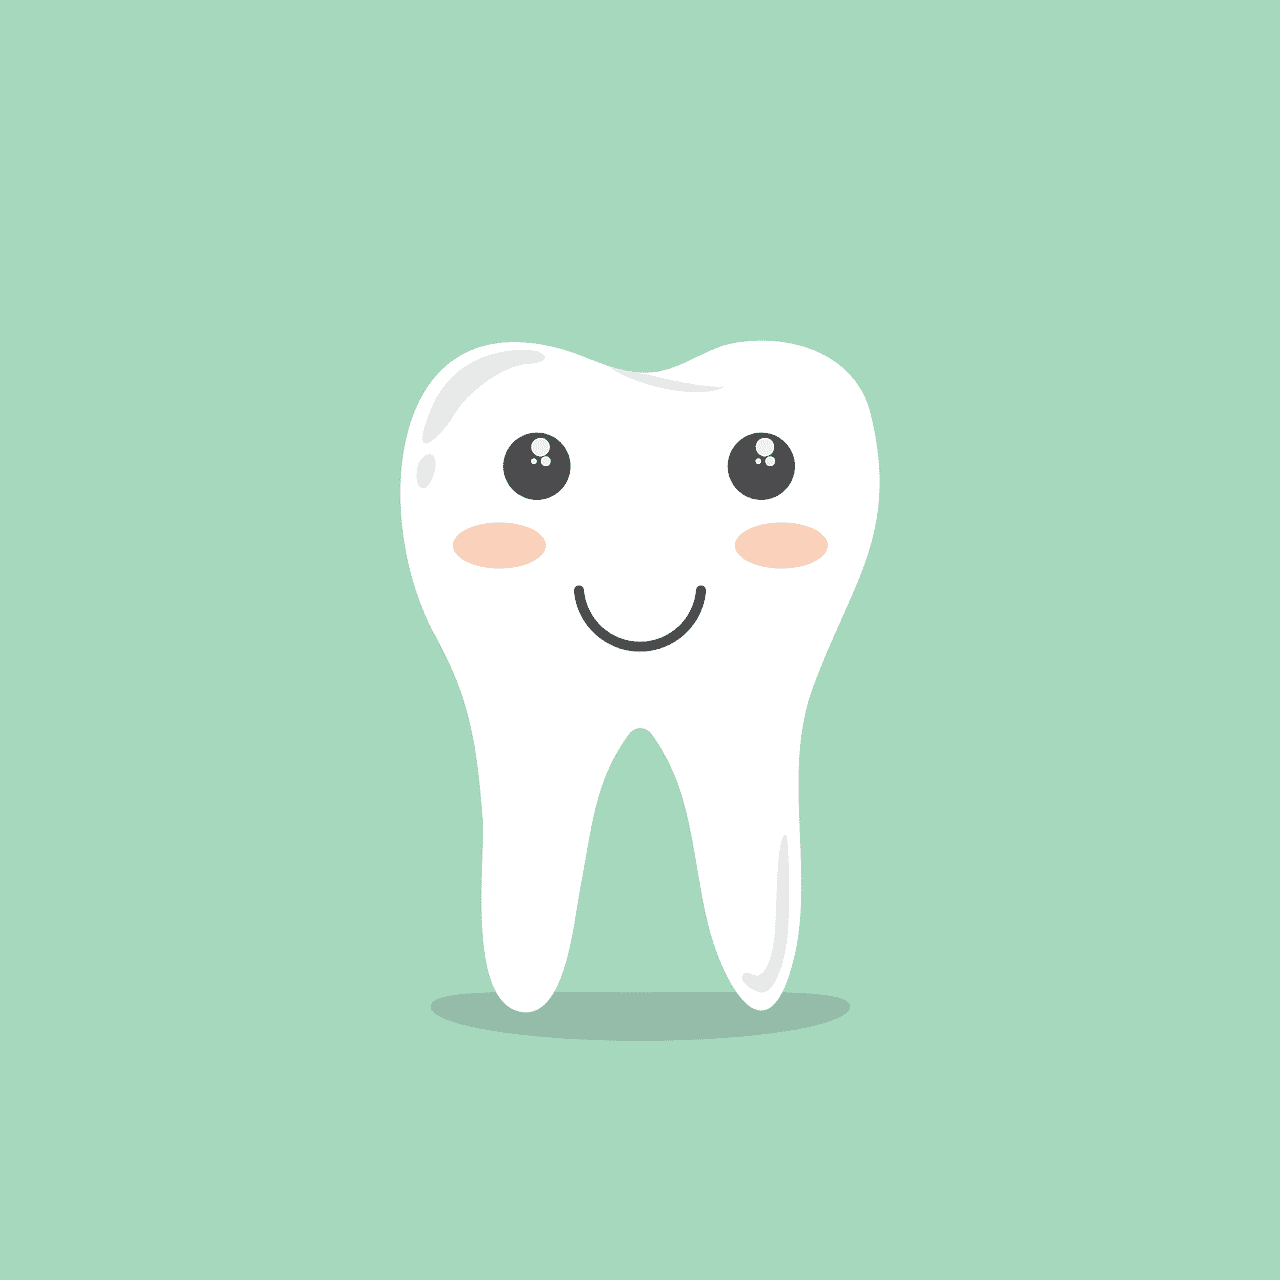 At What Age Should I Have My Wisdom Teeth Removed?